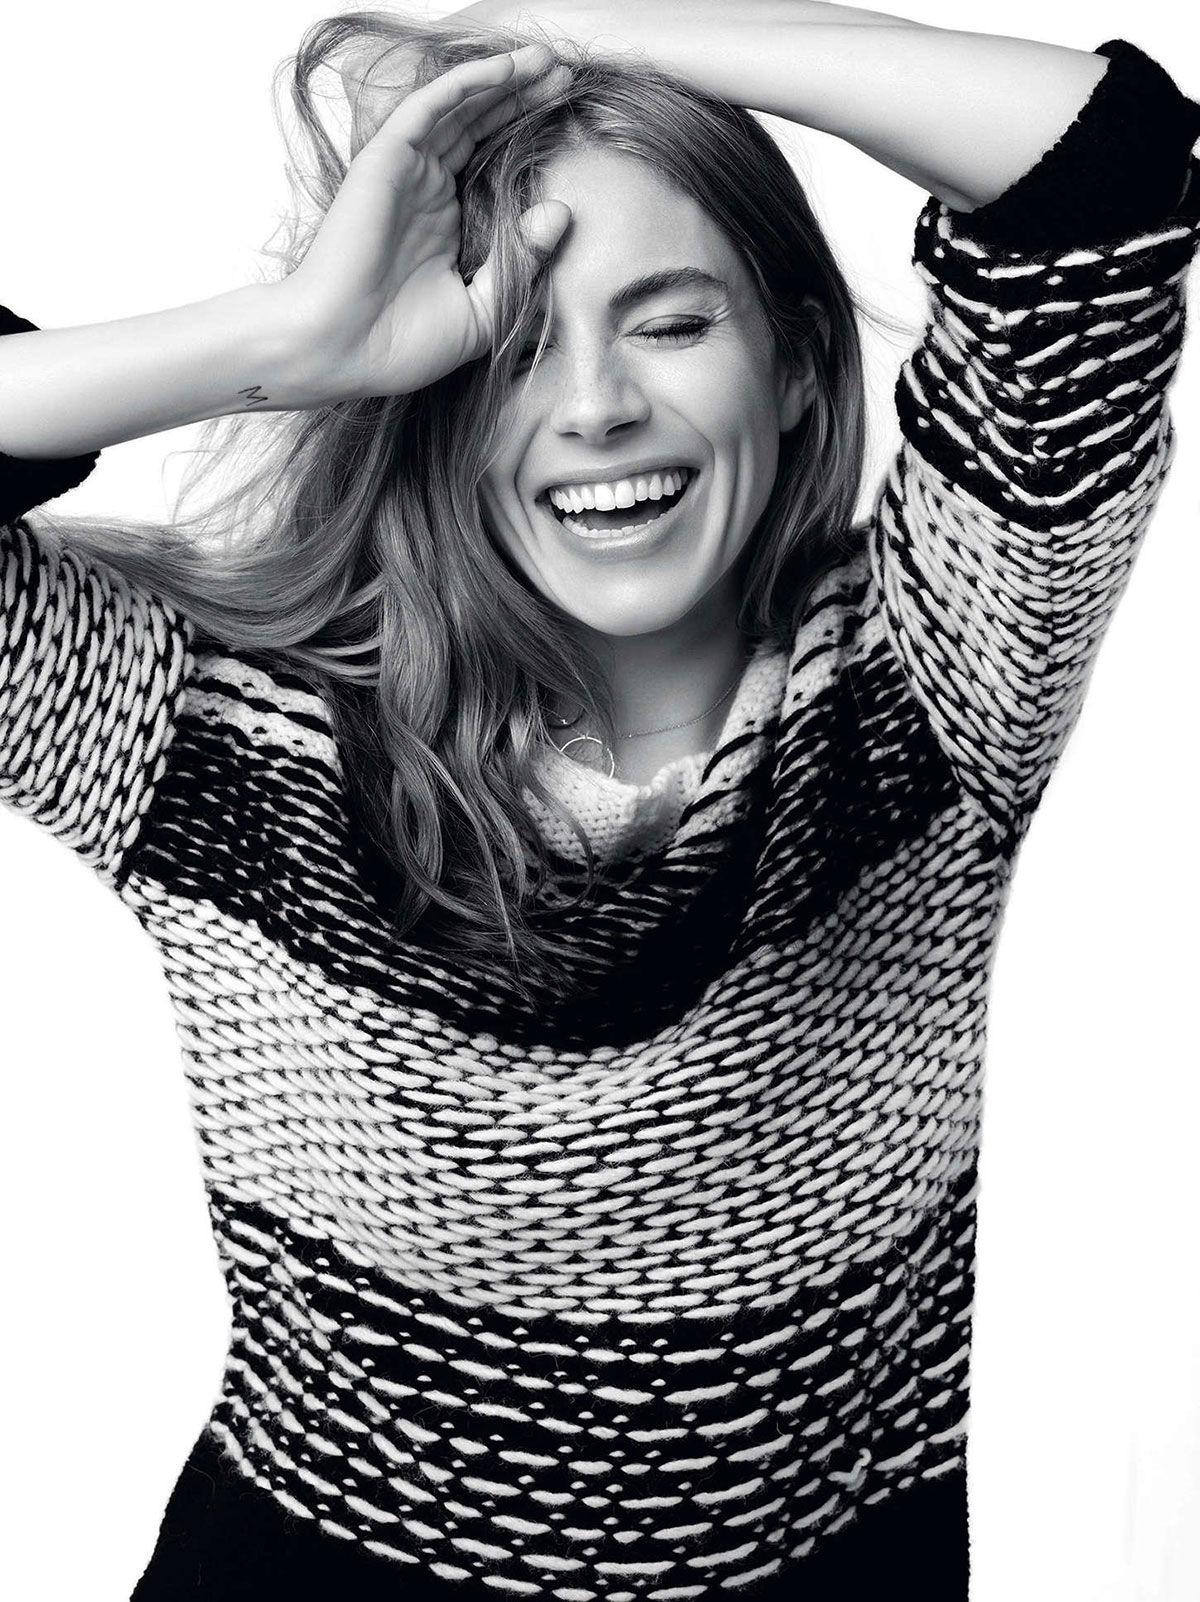 565246983a04 SIENNA MILLER – Caroll 2014 Collection by Cass Bird - HawtCelebs